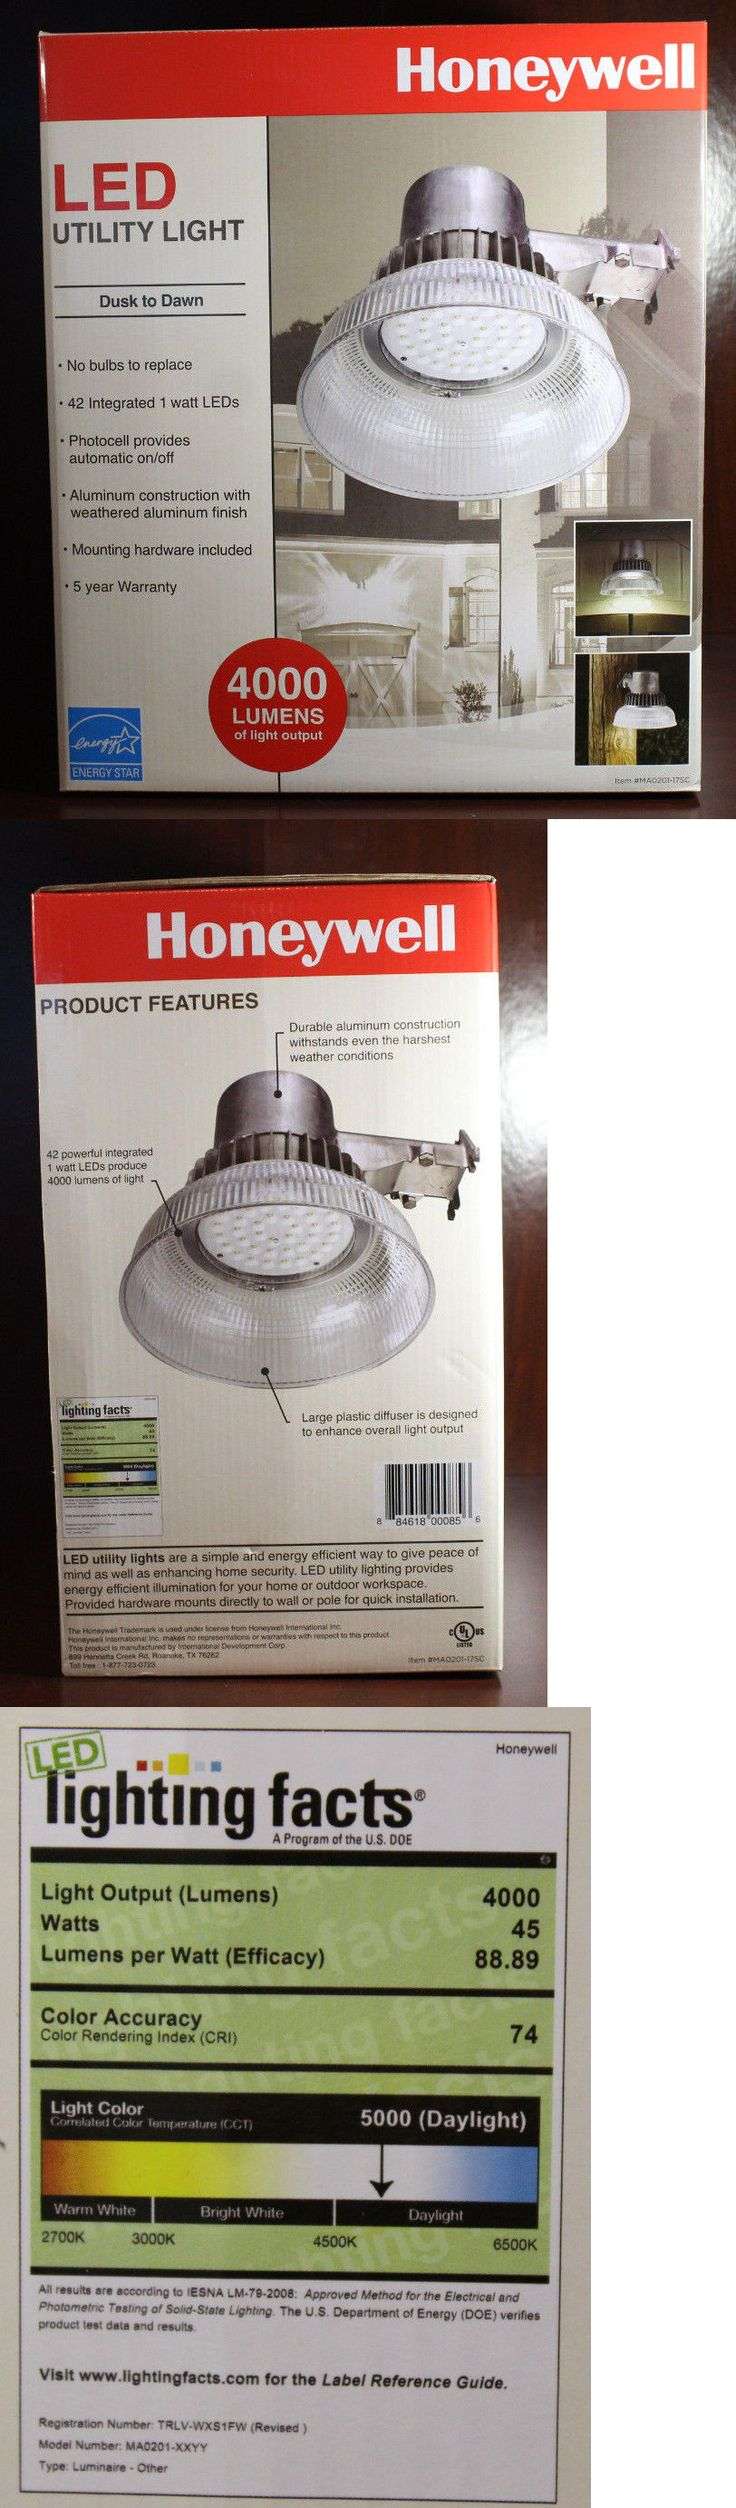 Outdoor Security and Floodlights 183393: New Honeywell Outdoor Led Security Light 4000 Lumen Dusk To Dawn Utility Light -> BUY IT NOW ONLY: $51.45 on eBay!